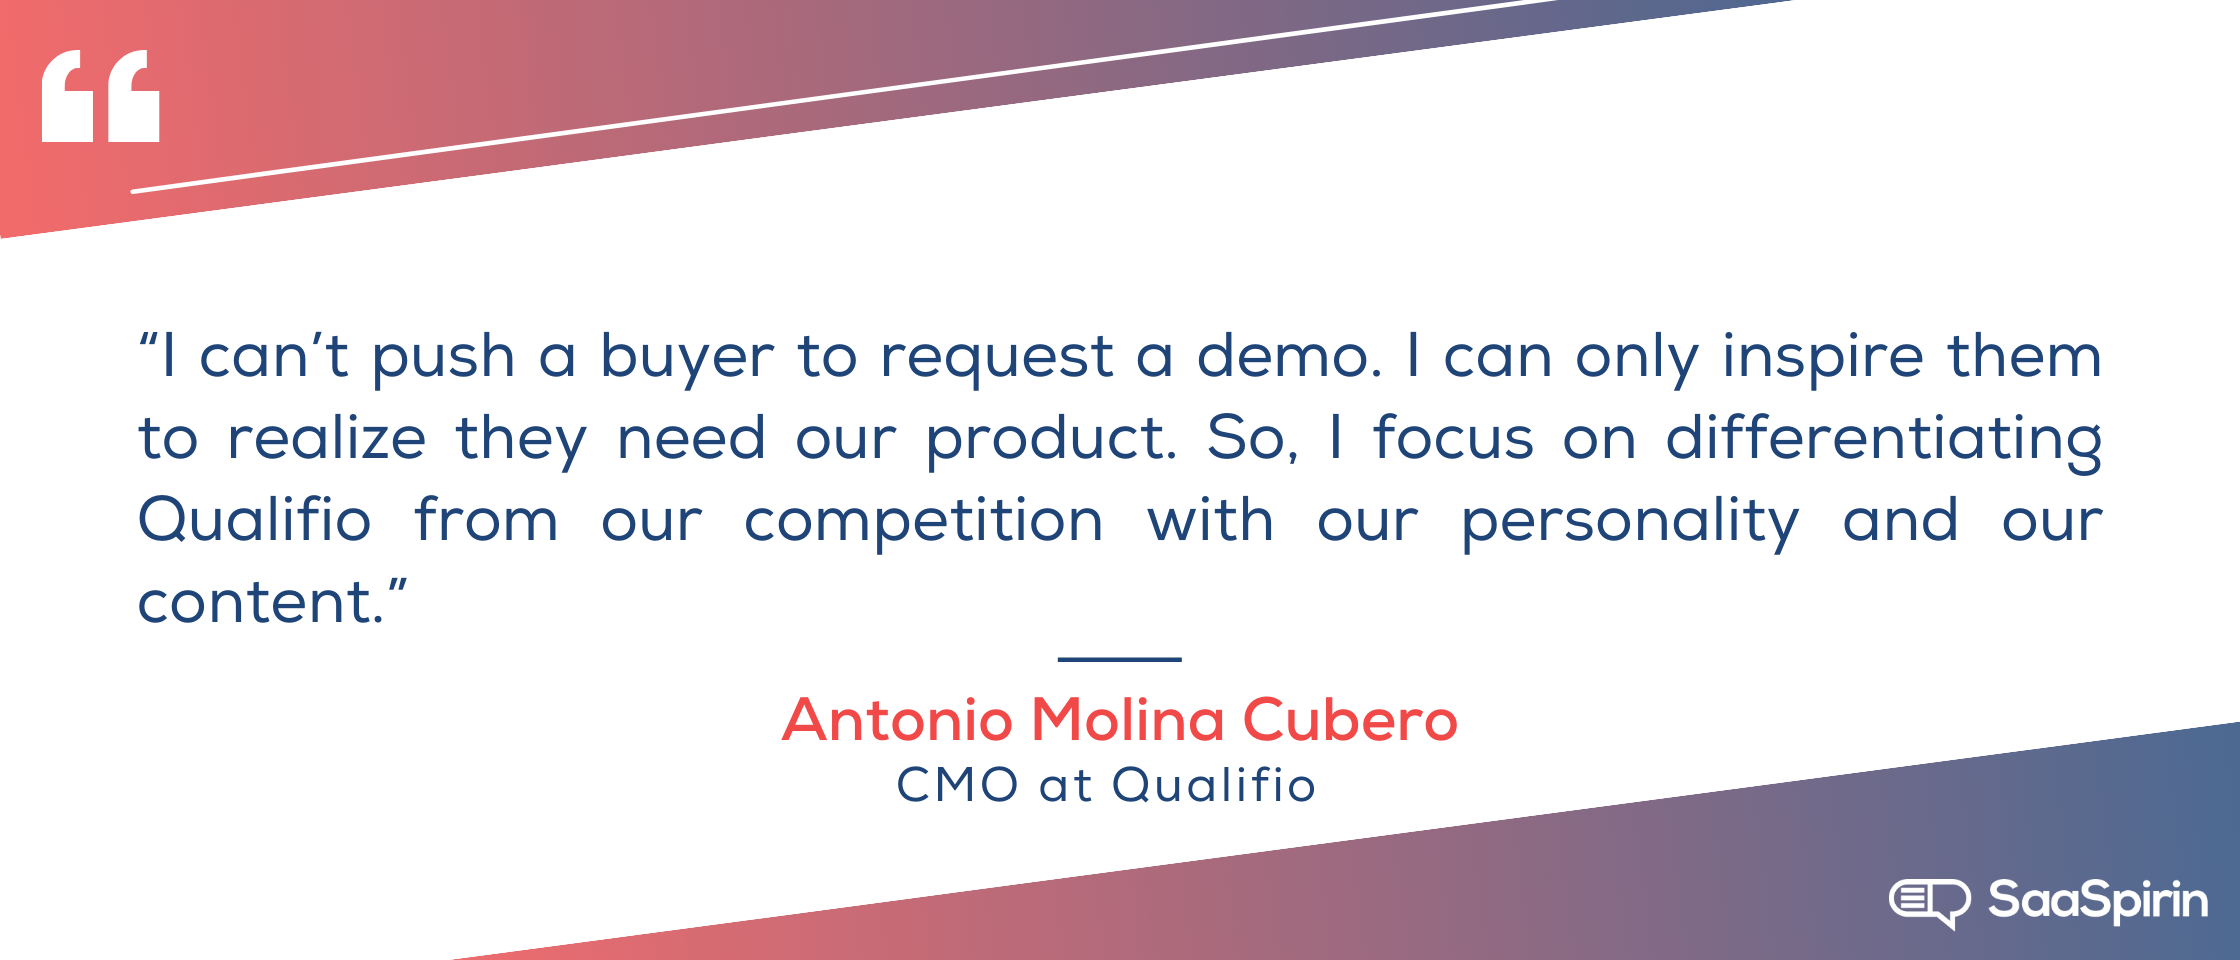 I-cant-push-a-buyer-to-request-a-demo-I-can-only-inspire-them-to-realize-they-need-our-product-So-I-focus-on-differentiating-Qualifio-from-our-competition-with-our-personality-and-our-content.png